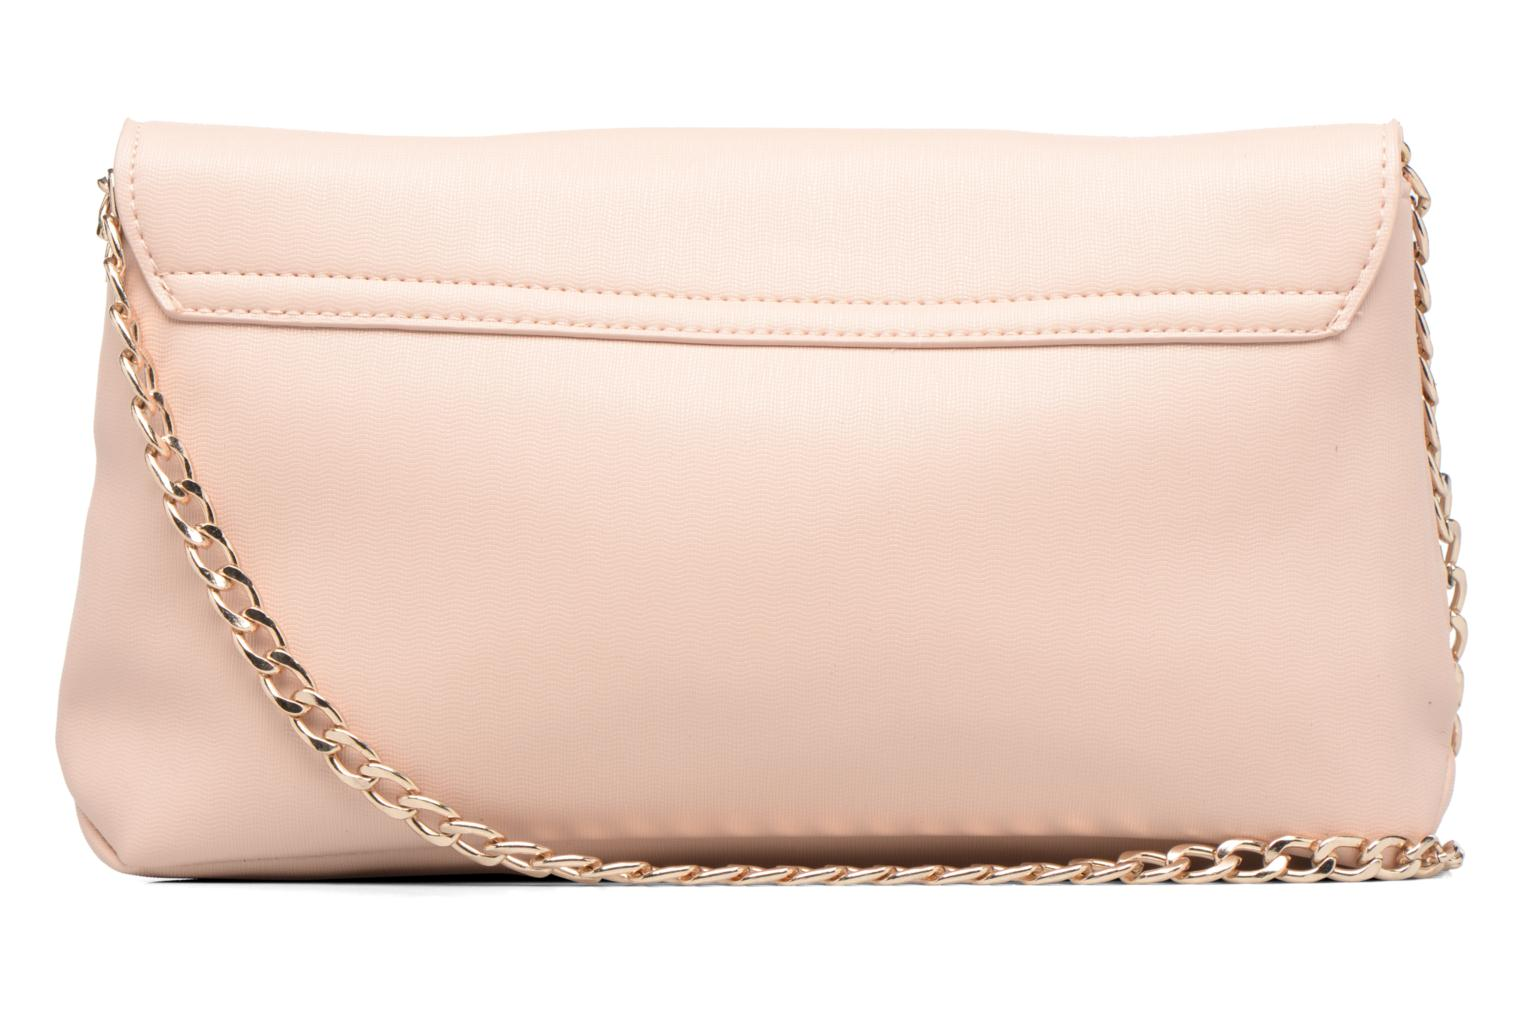 Borse Dorothy Perkins Large Structured Clutch Rosa immagine frontale